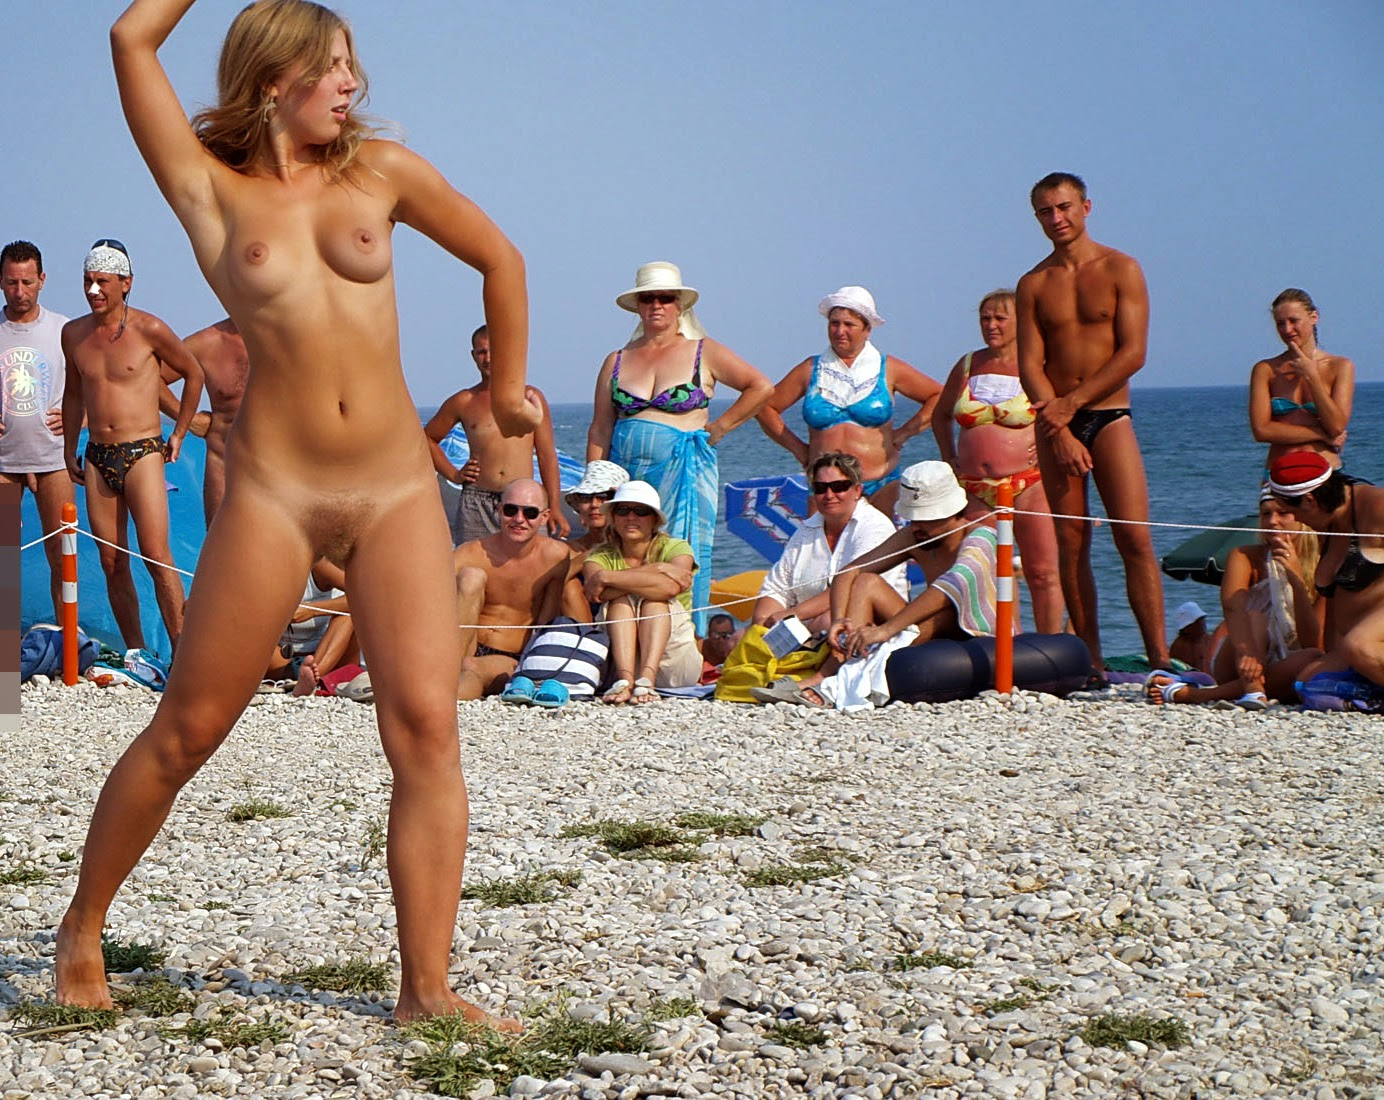 Nudism - Photo - Hq  Family Nudism - Black Sea Beach-1520